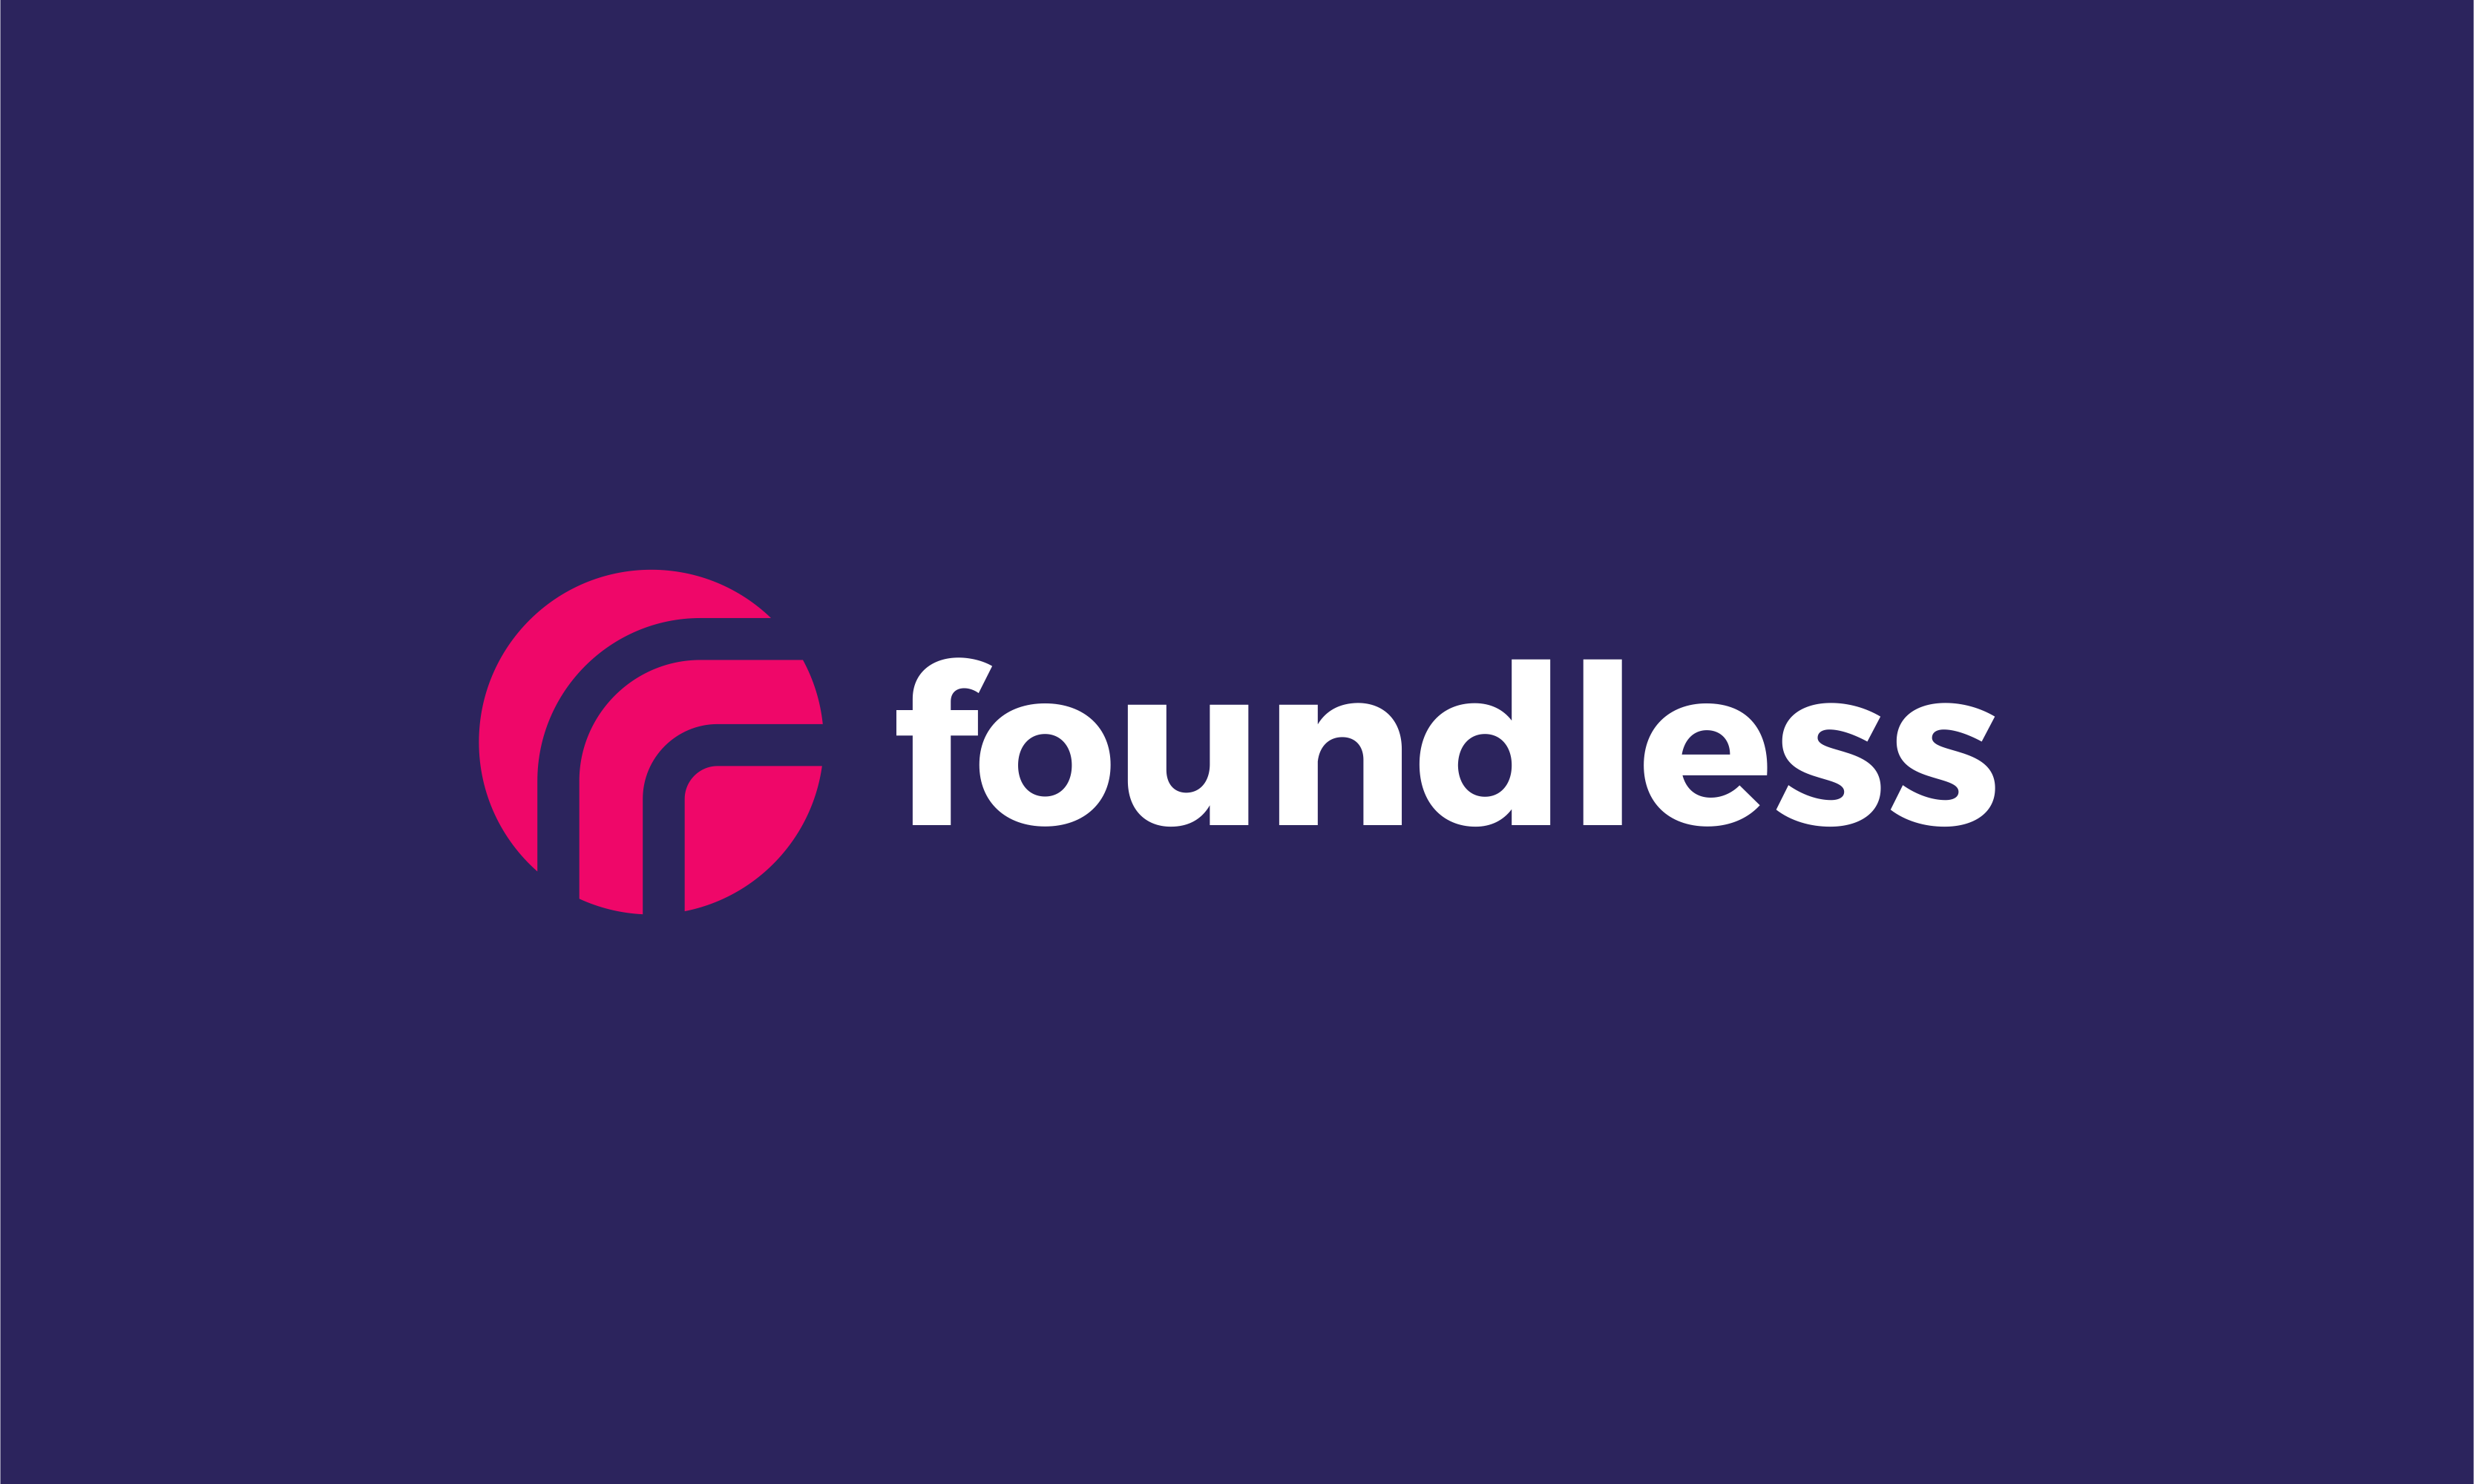 Foundless